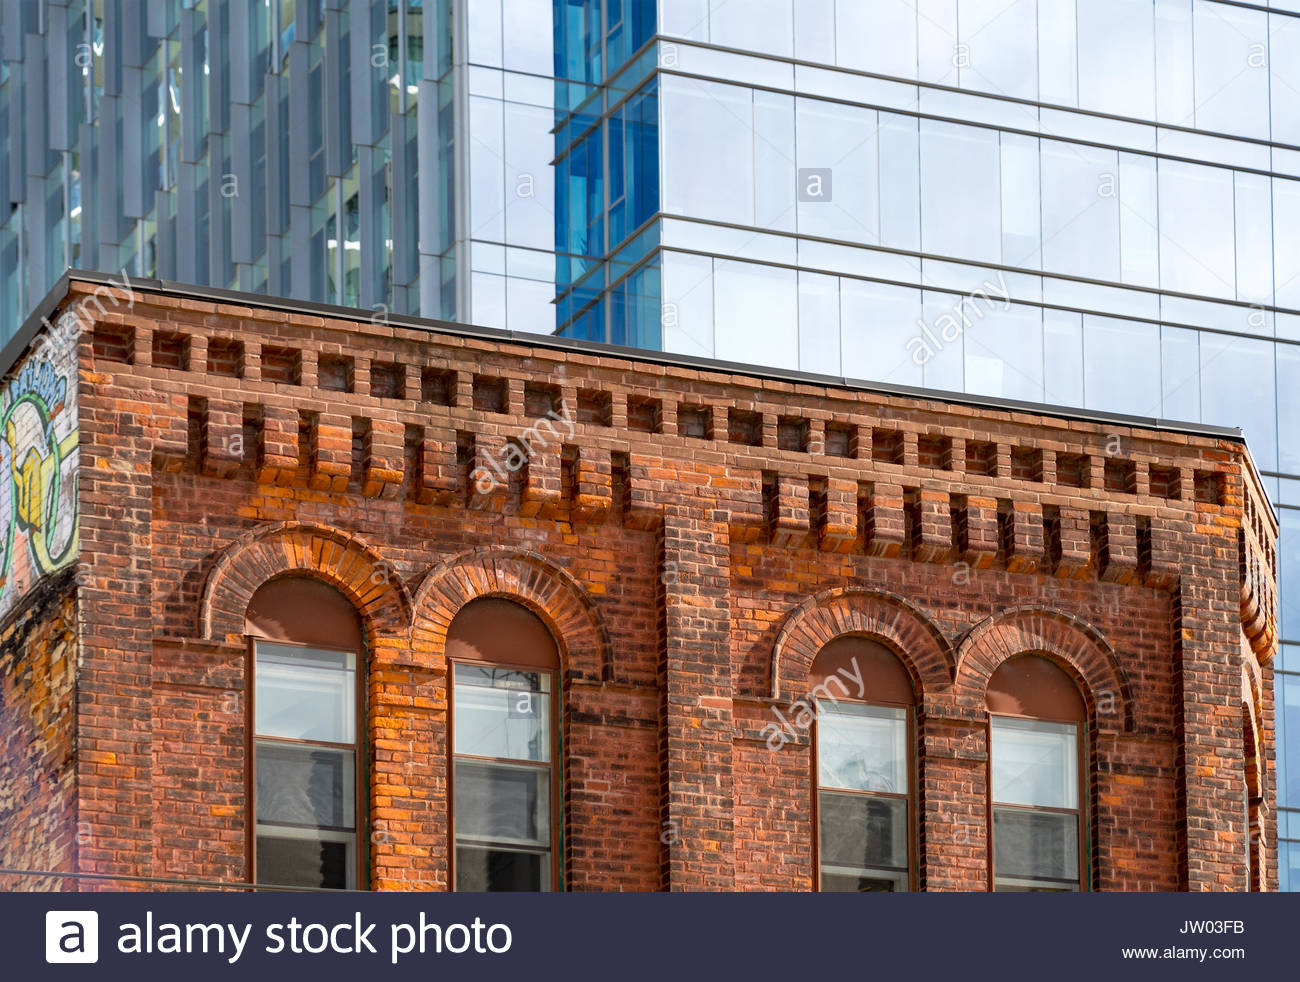 Victorian architecture red brick buildings in Queen Street West contrasting with modern skyscrapers. The heritage Stock Photo